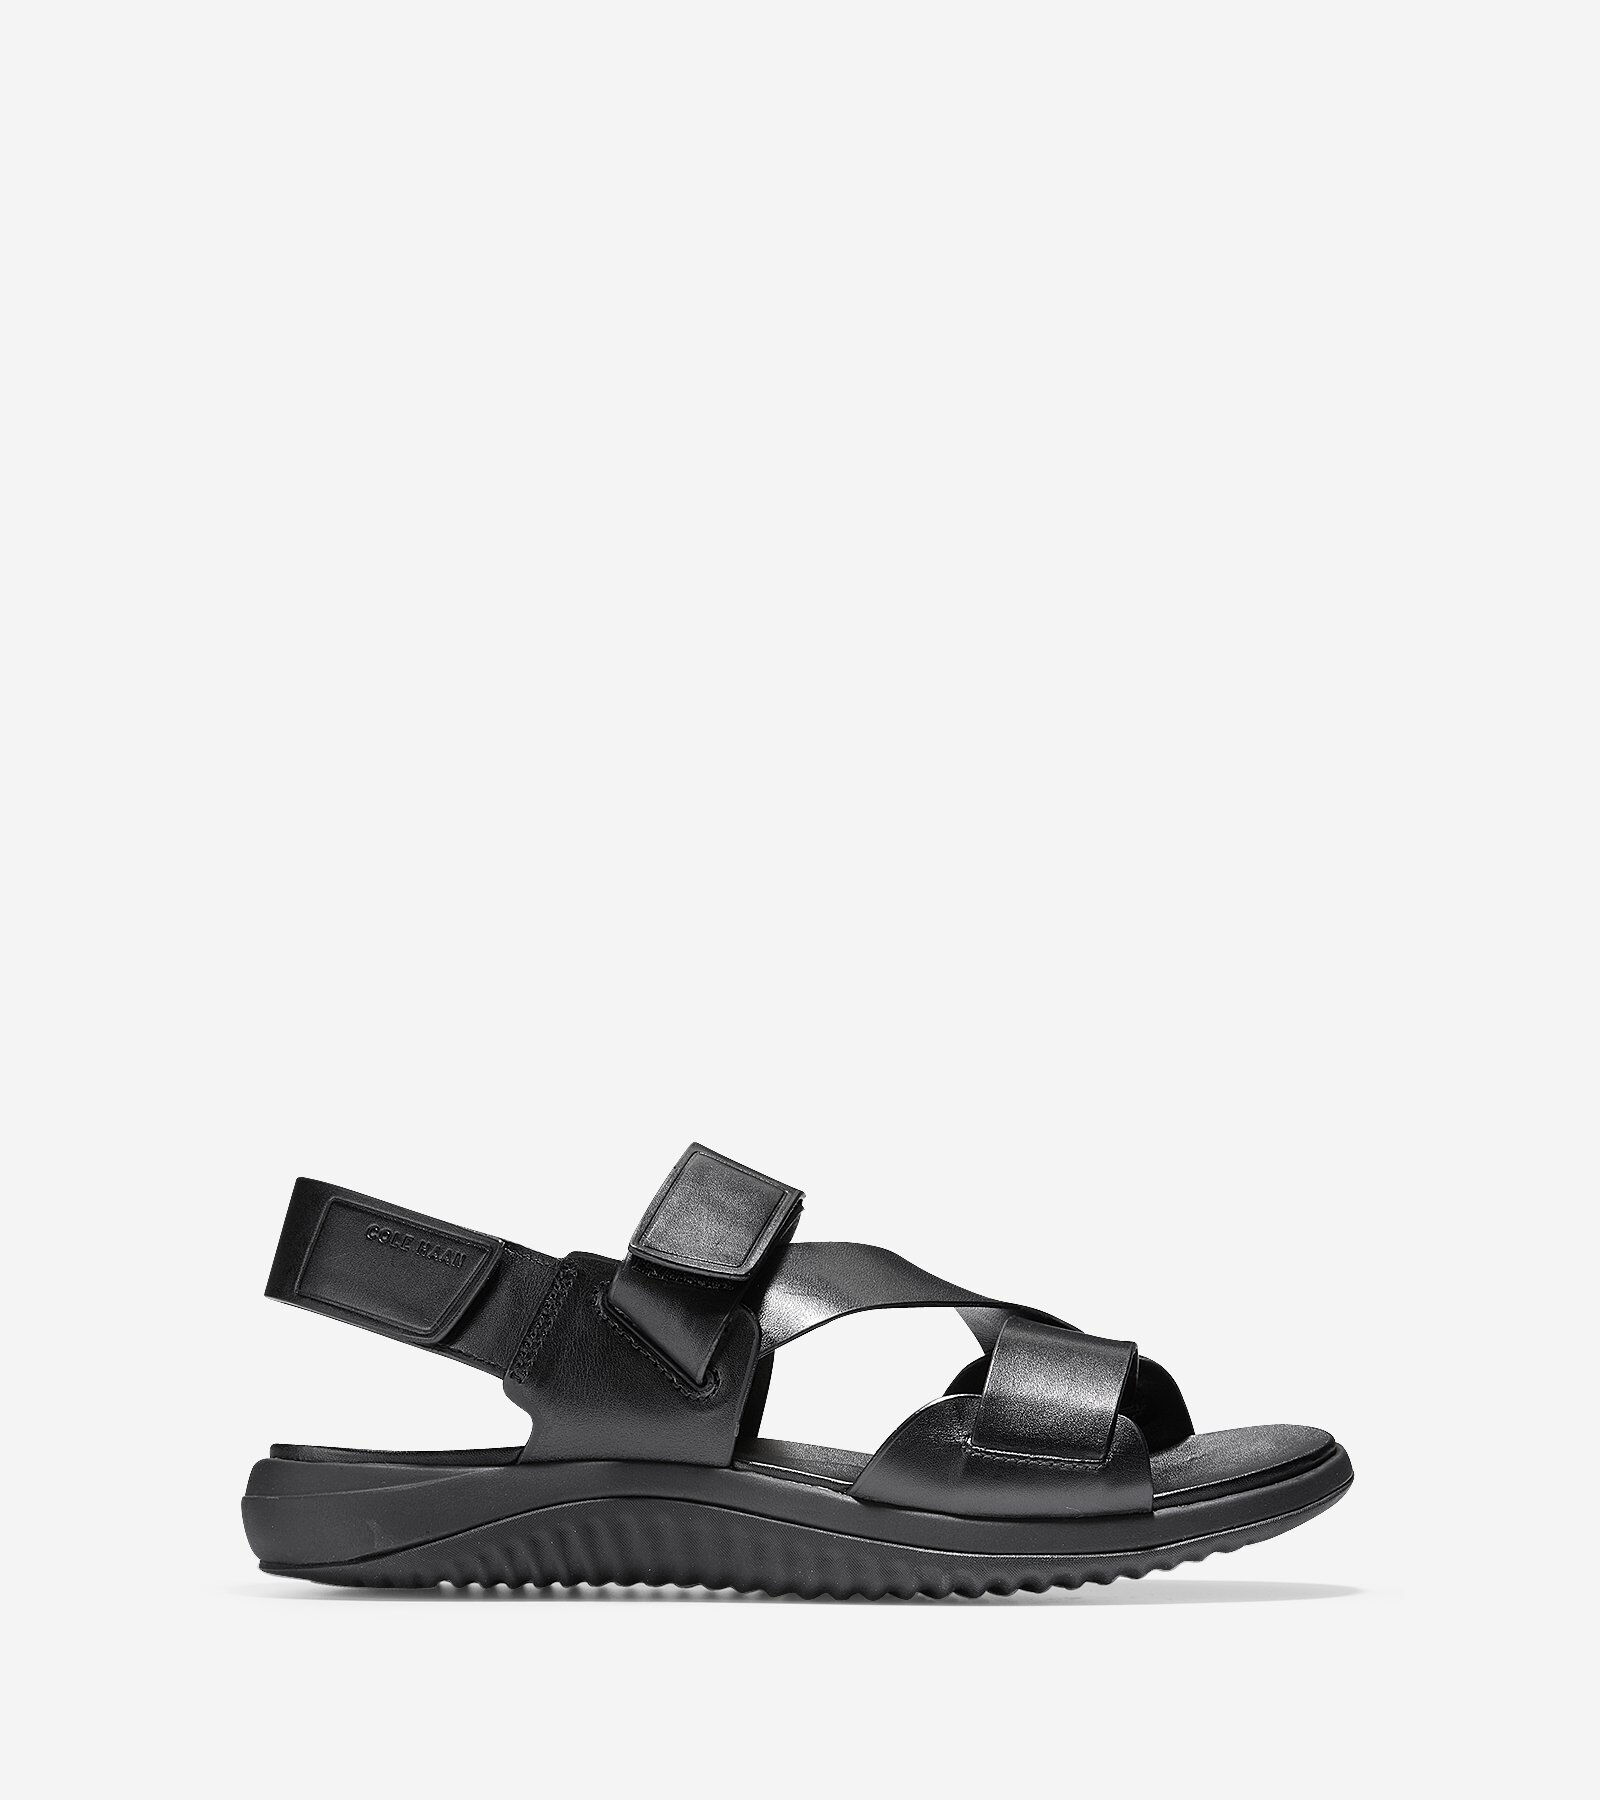 sale high quality cheap fast delivery Cole Haan Leather Multistrap Sandals from china online brand new unisex YVLAuPwwJ